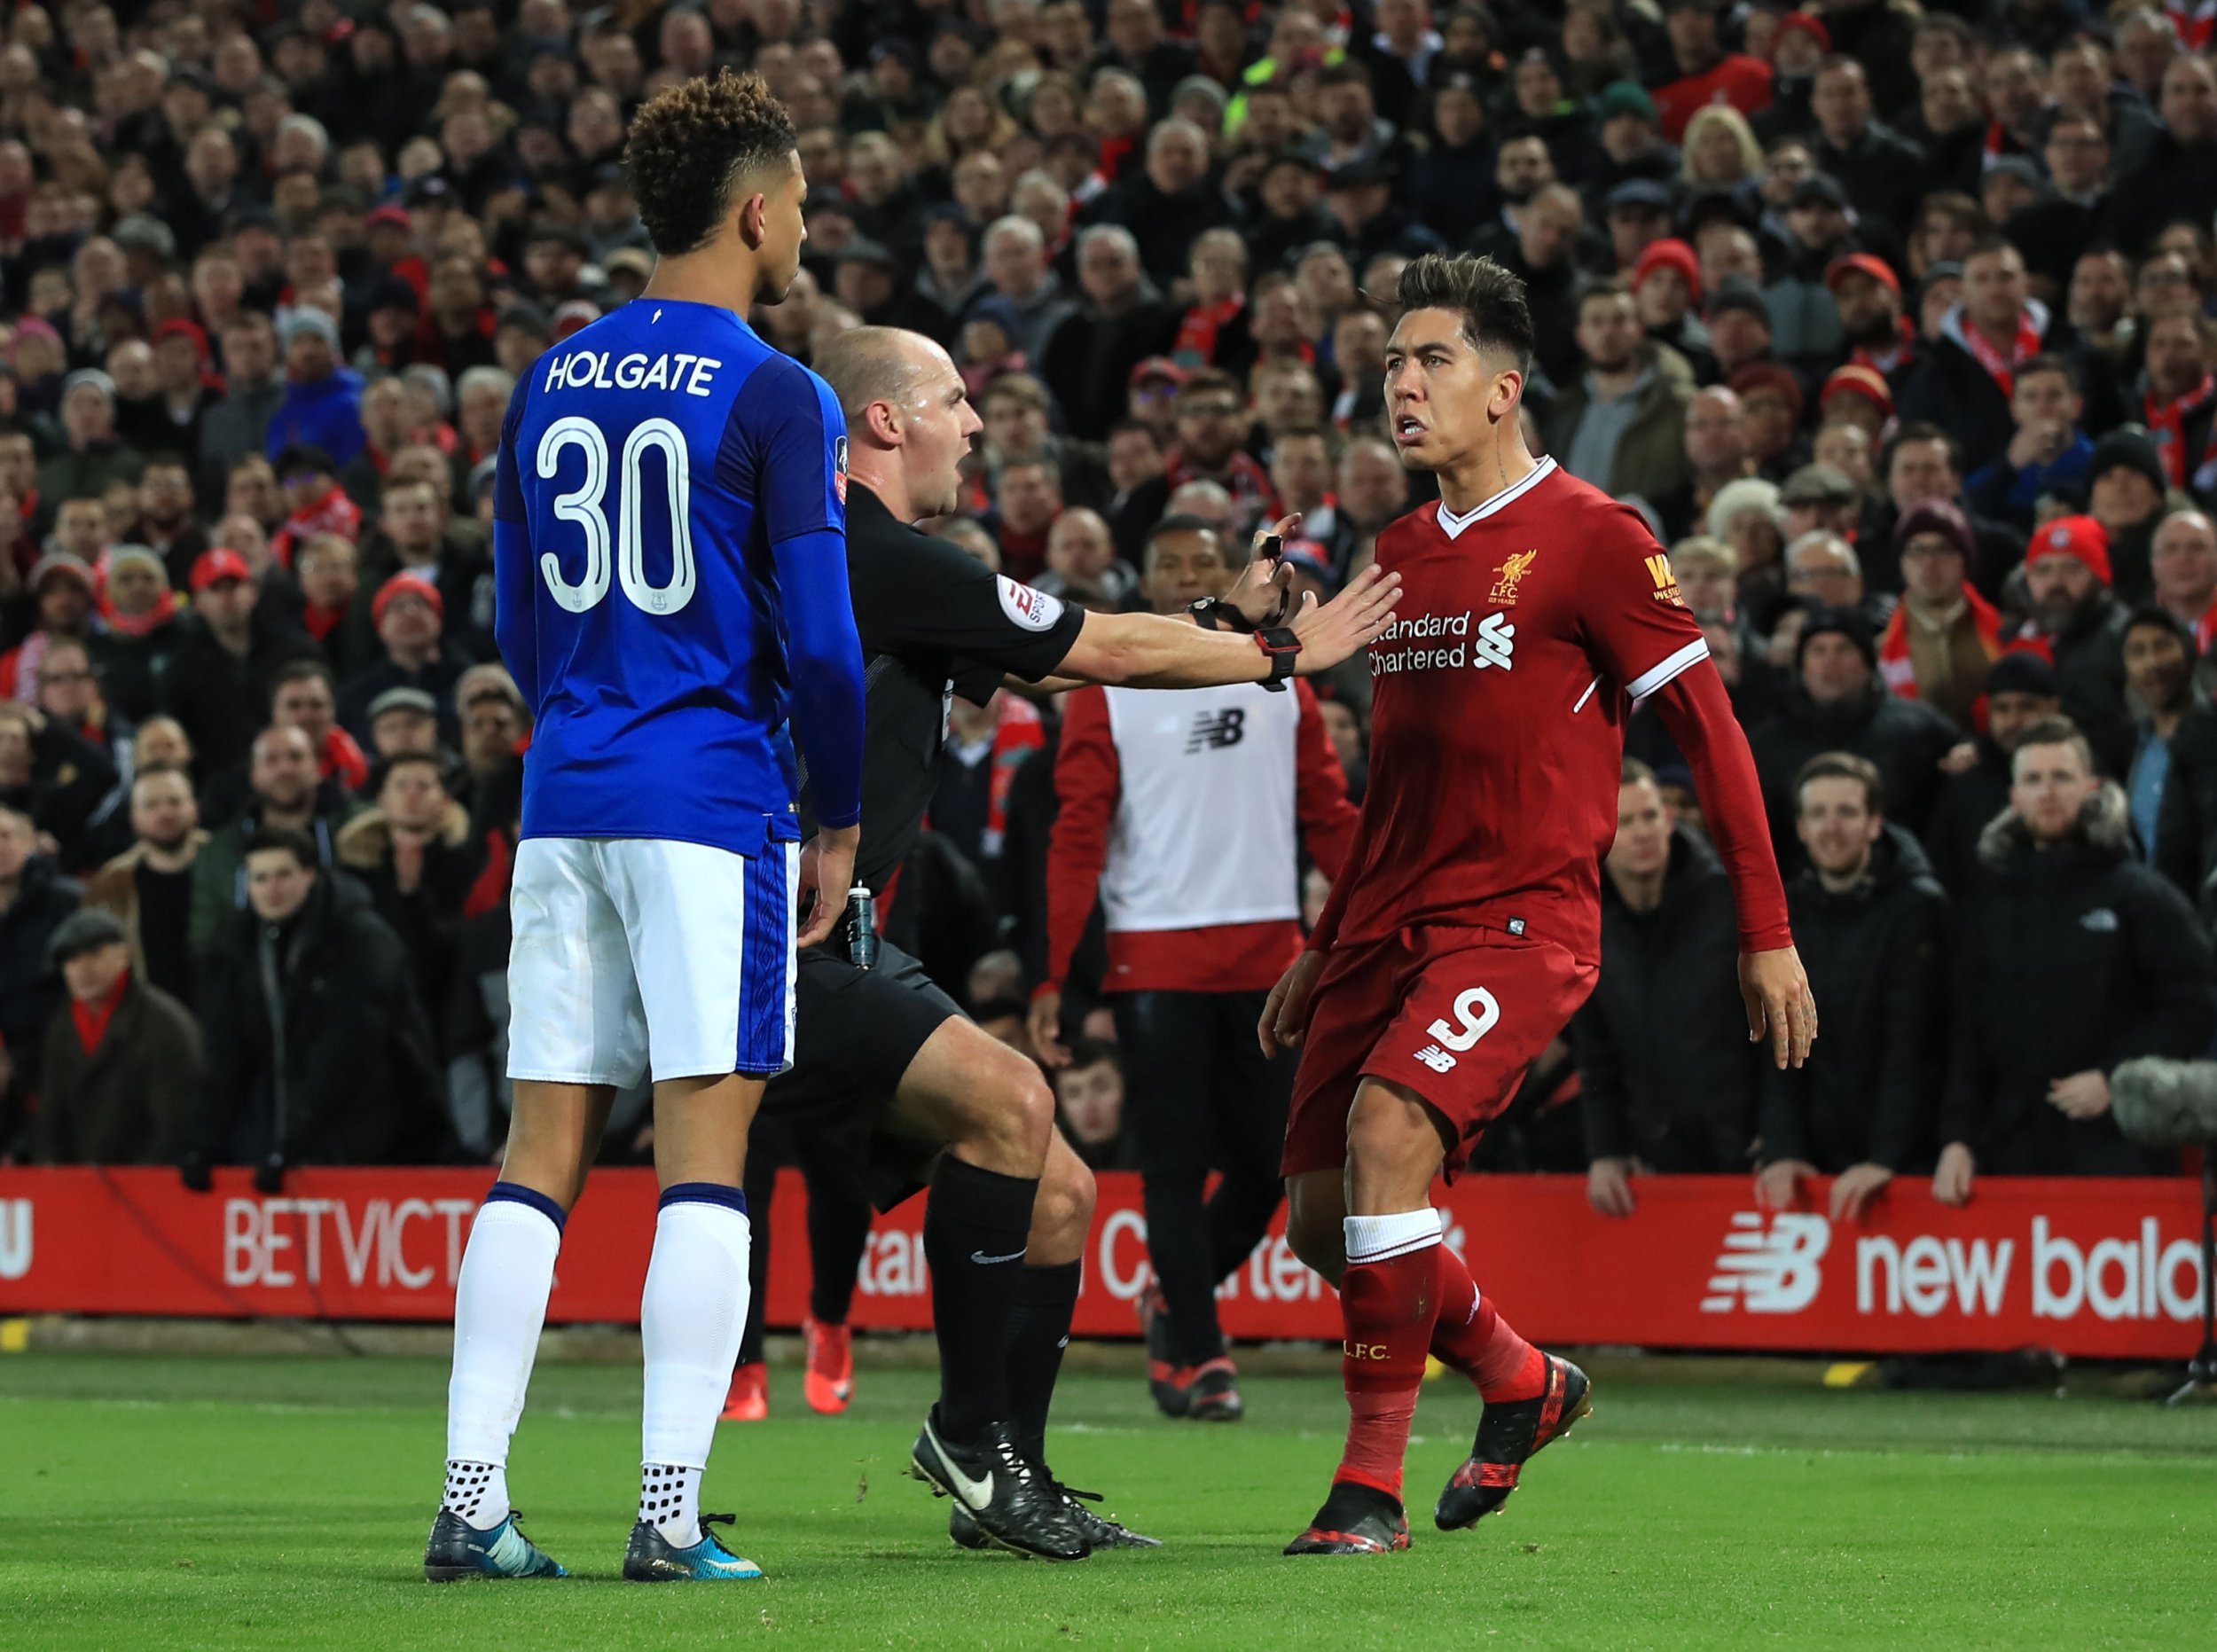 Roberto Firmino to face no charge over alleged racial abuse towards Mason Holgate